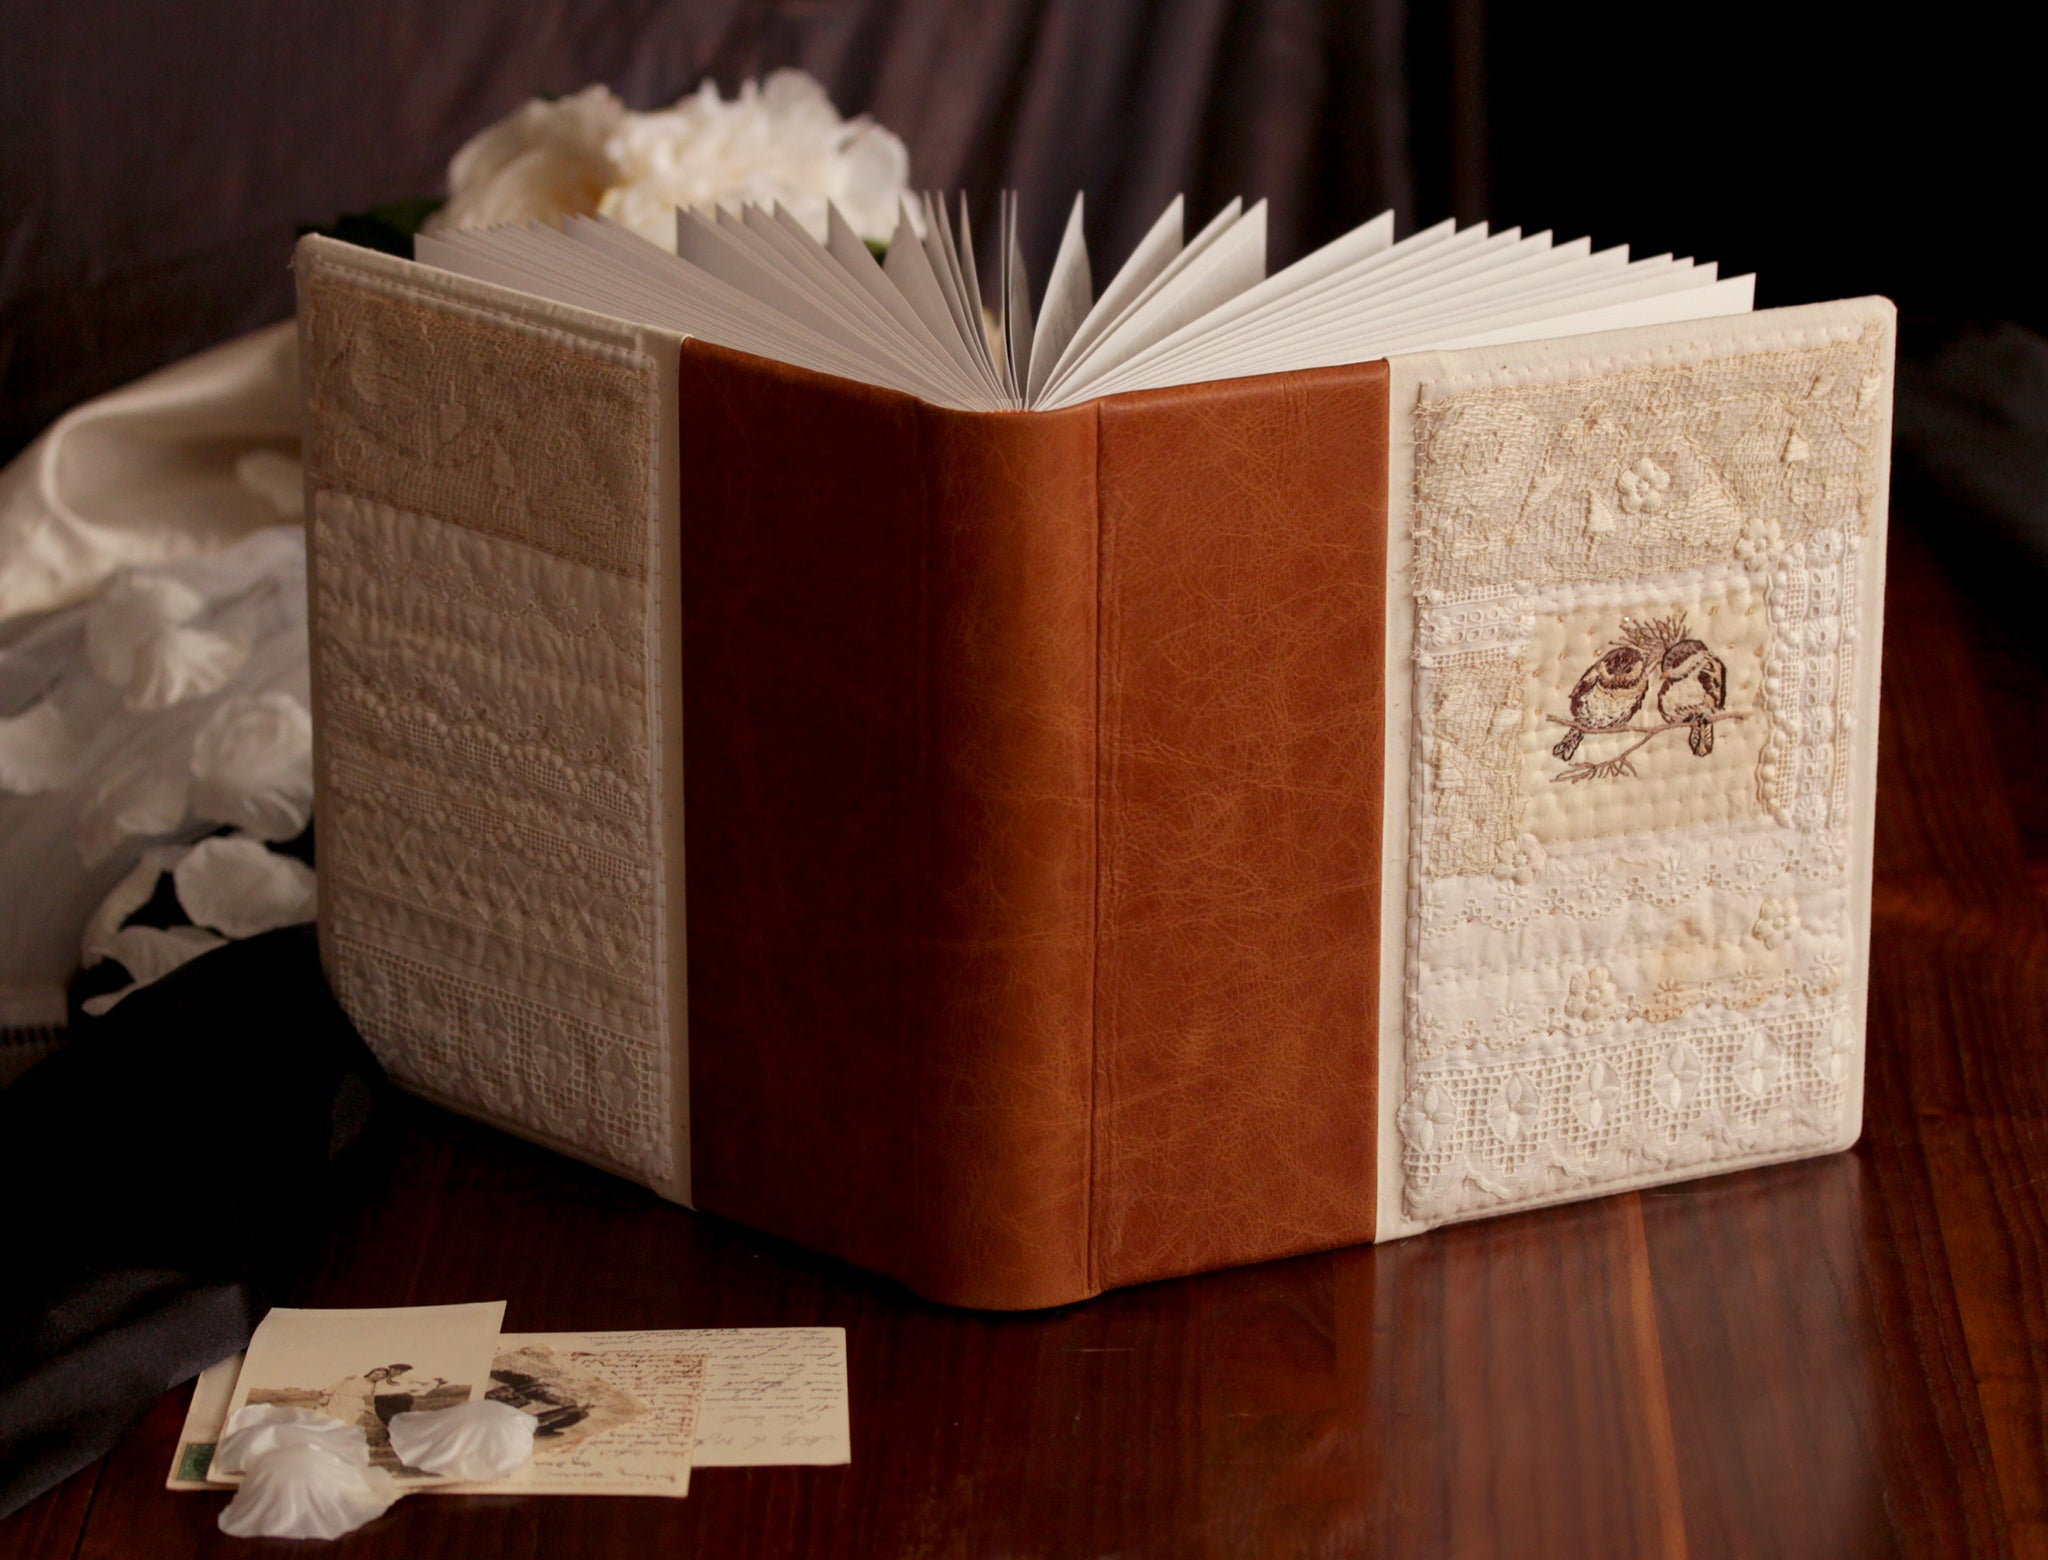 Set of Handmade Wedding Photo Album and Guest Book || Luxury Vintage Lace and Leather Bound Bridal Set